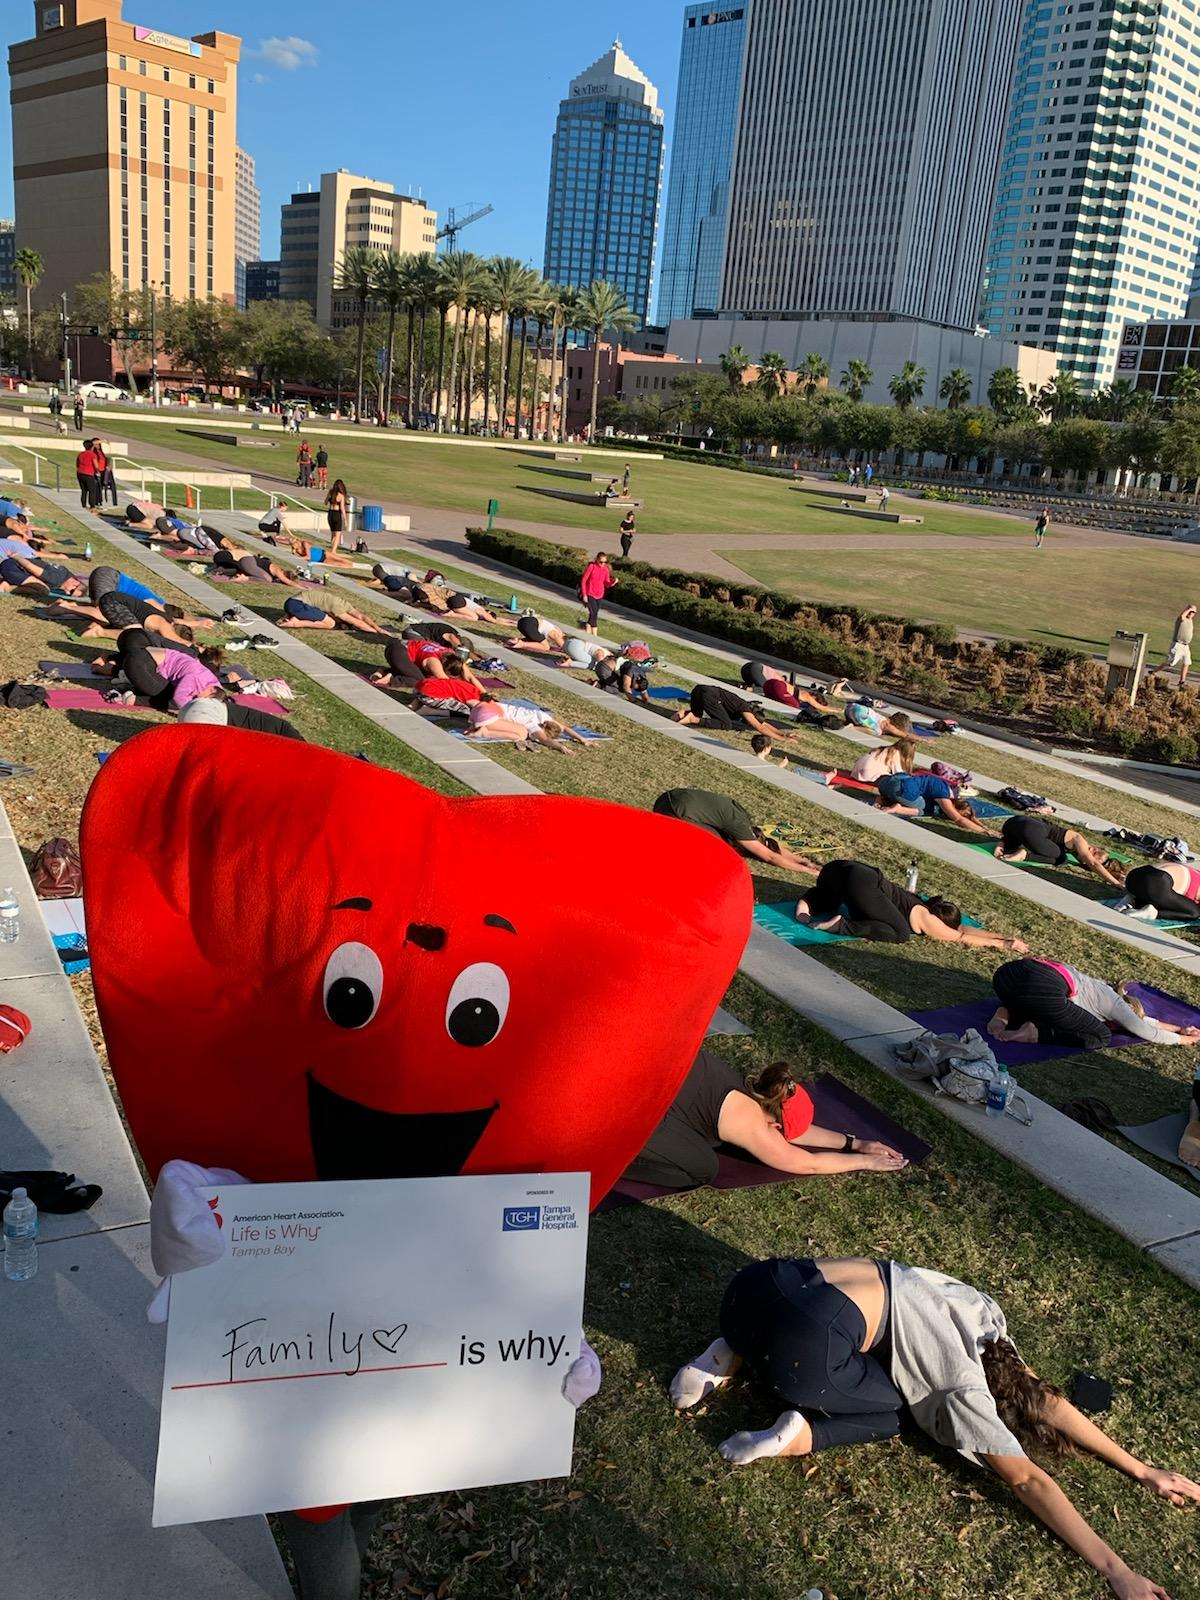 2/9/20 Yoga in the Park with Heart a community collaboration with American Heart Association, Tampa Downtown Partnership and Lucky Cat Yoga